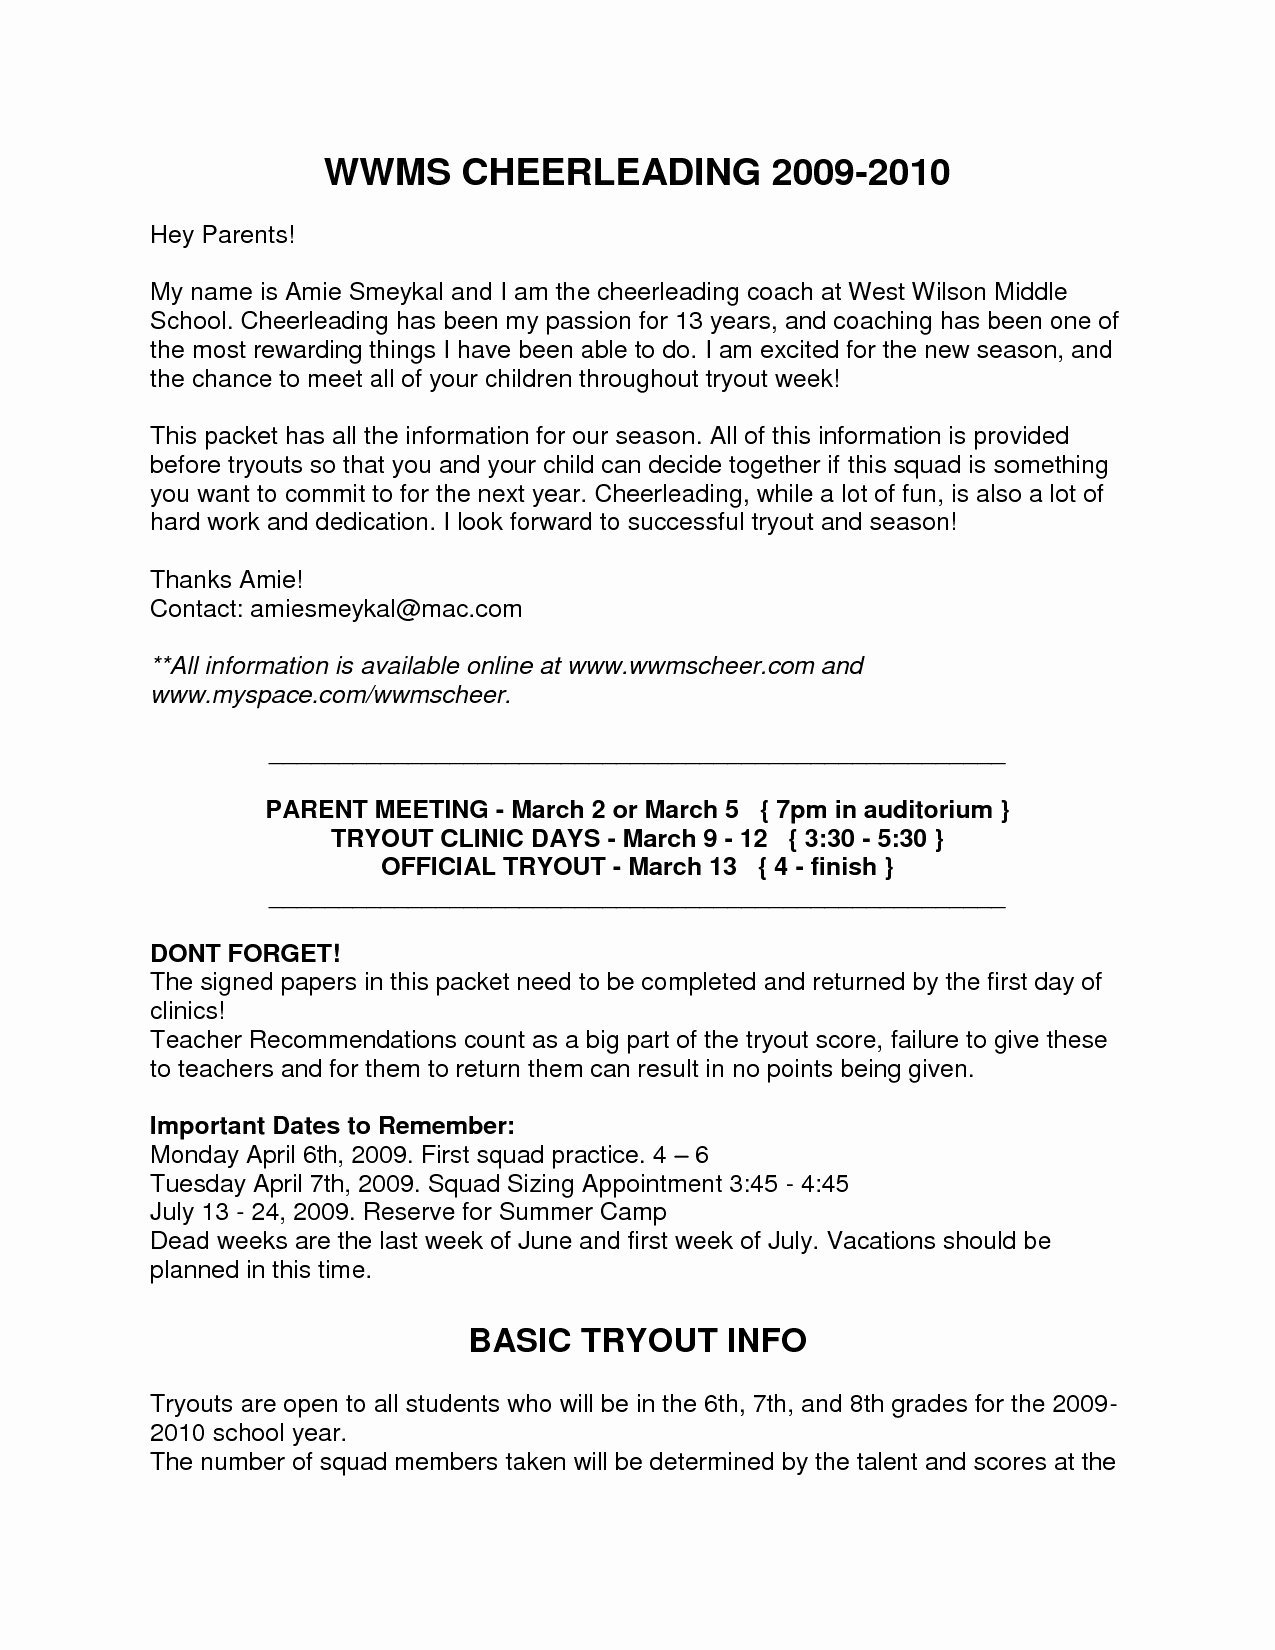 Letters to Parents Template Best Of Summer Camp Letter to Parents Template Samples